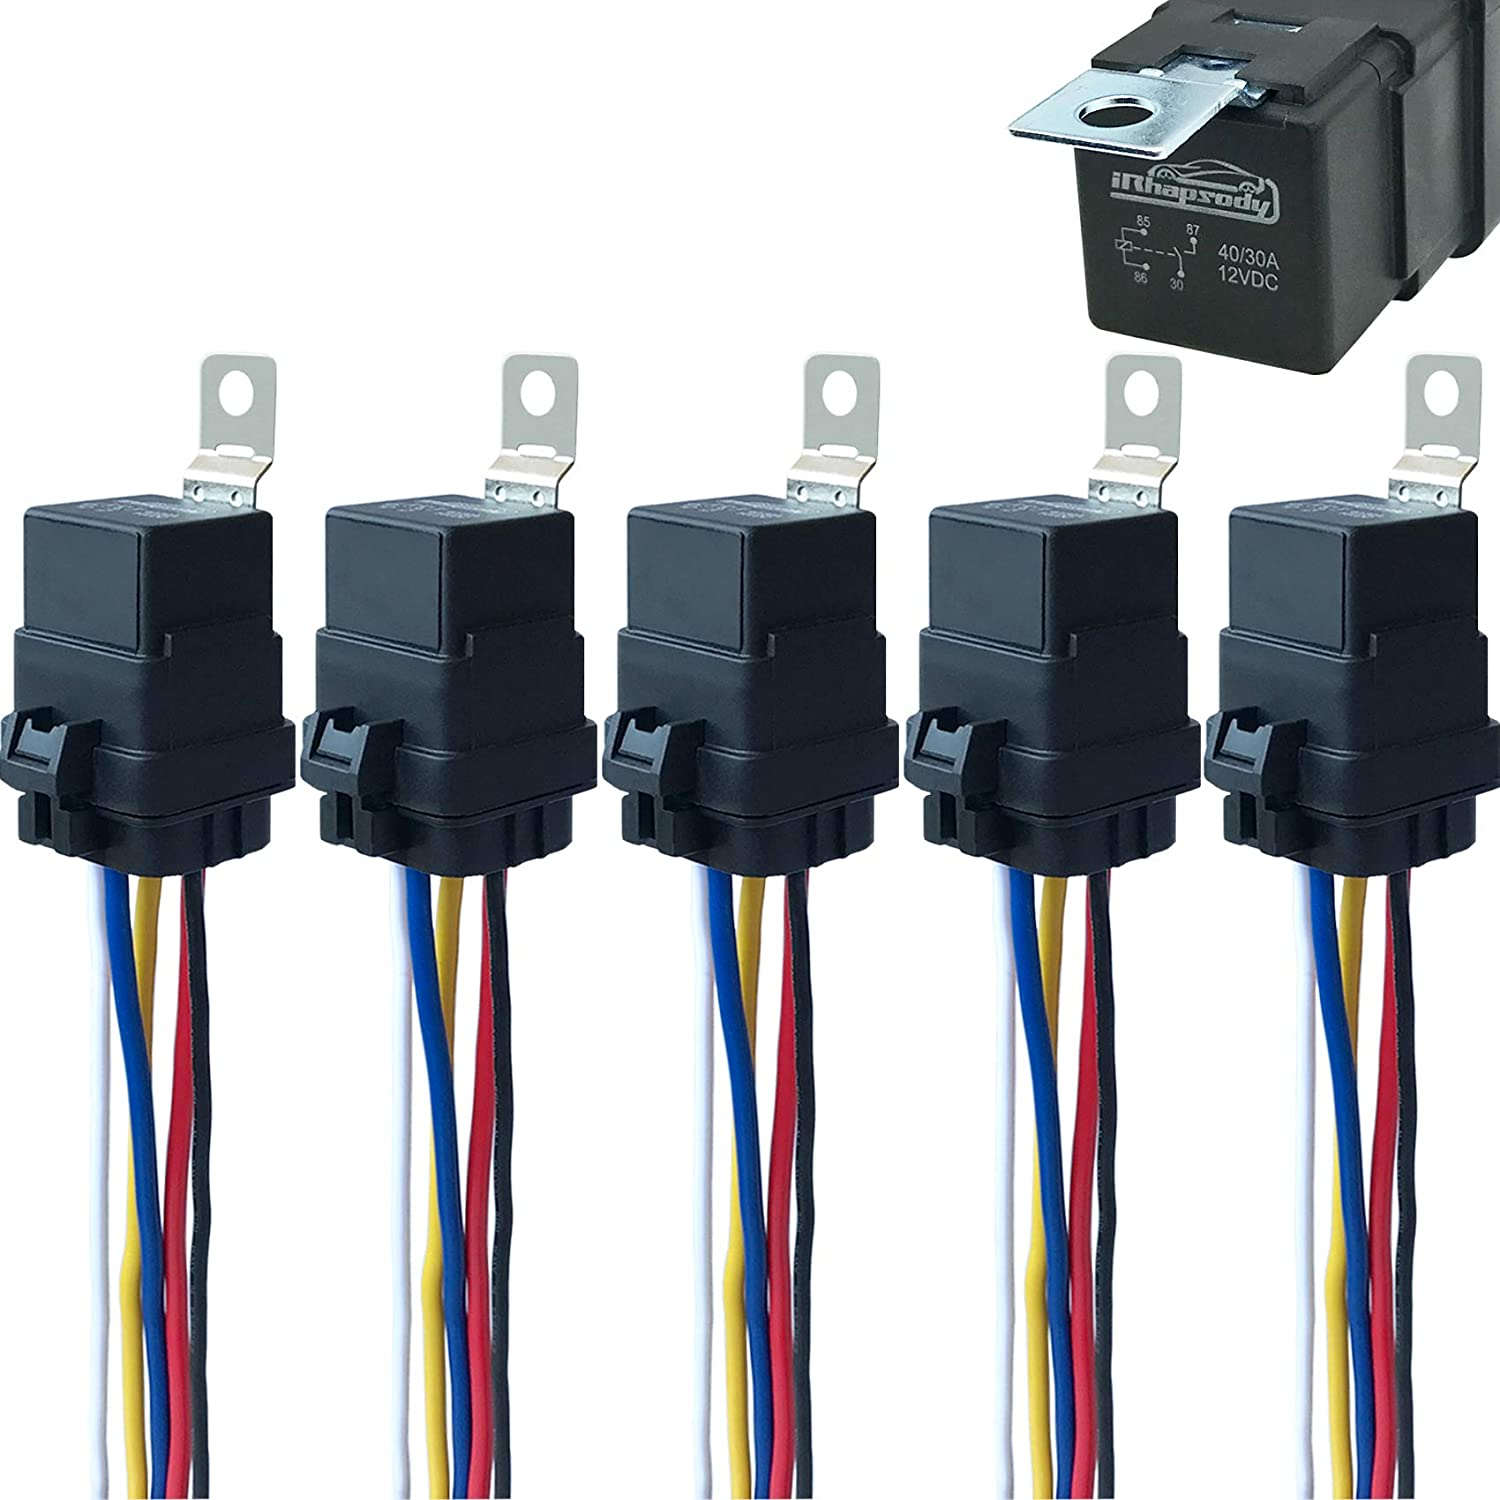 Amazon.com: 5 Pack 40/30 AMP 12 V DC Waterproof Relay and Harness - Heavy  Duty 12 AWG Tinned Copper Wires, 5-PIN SPDT Bosch Style Automotive Relay:  Industrial & ScientificAmazon.com